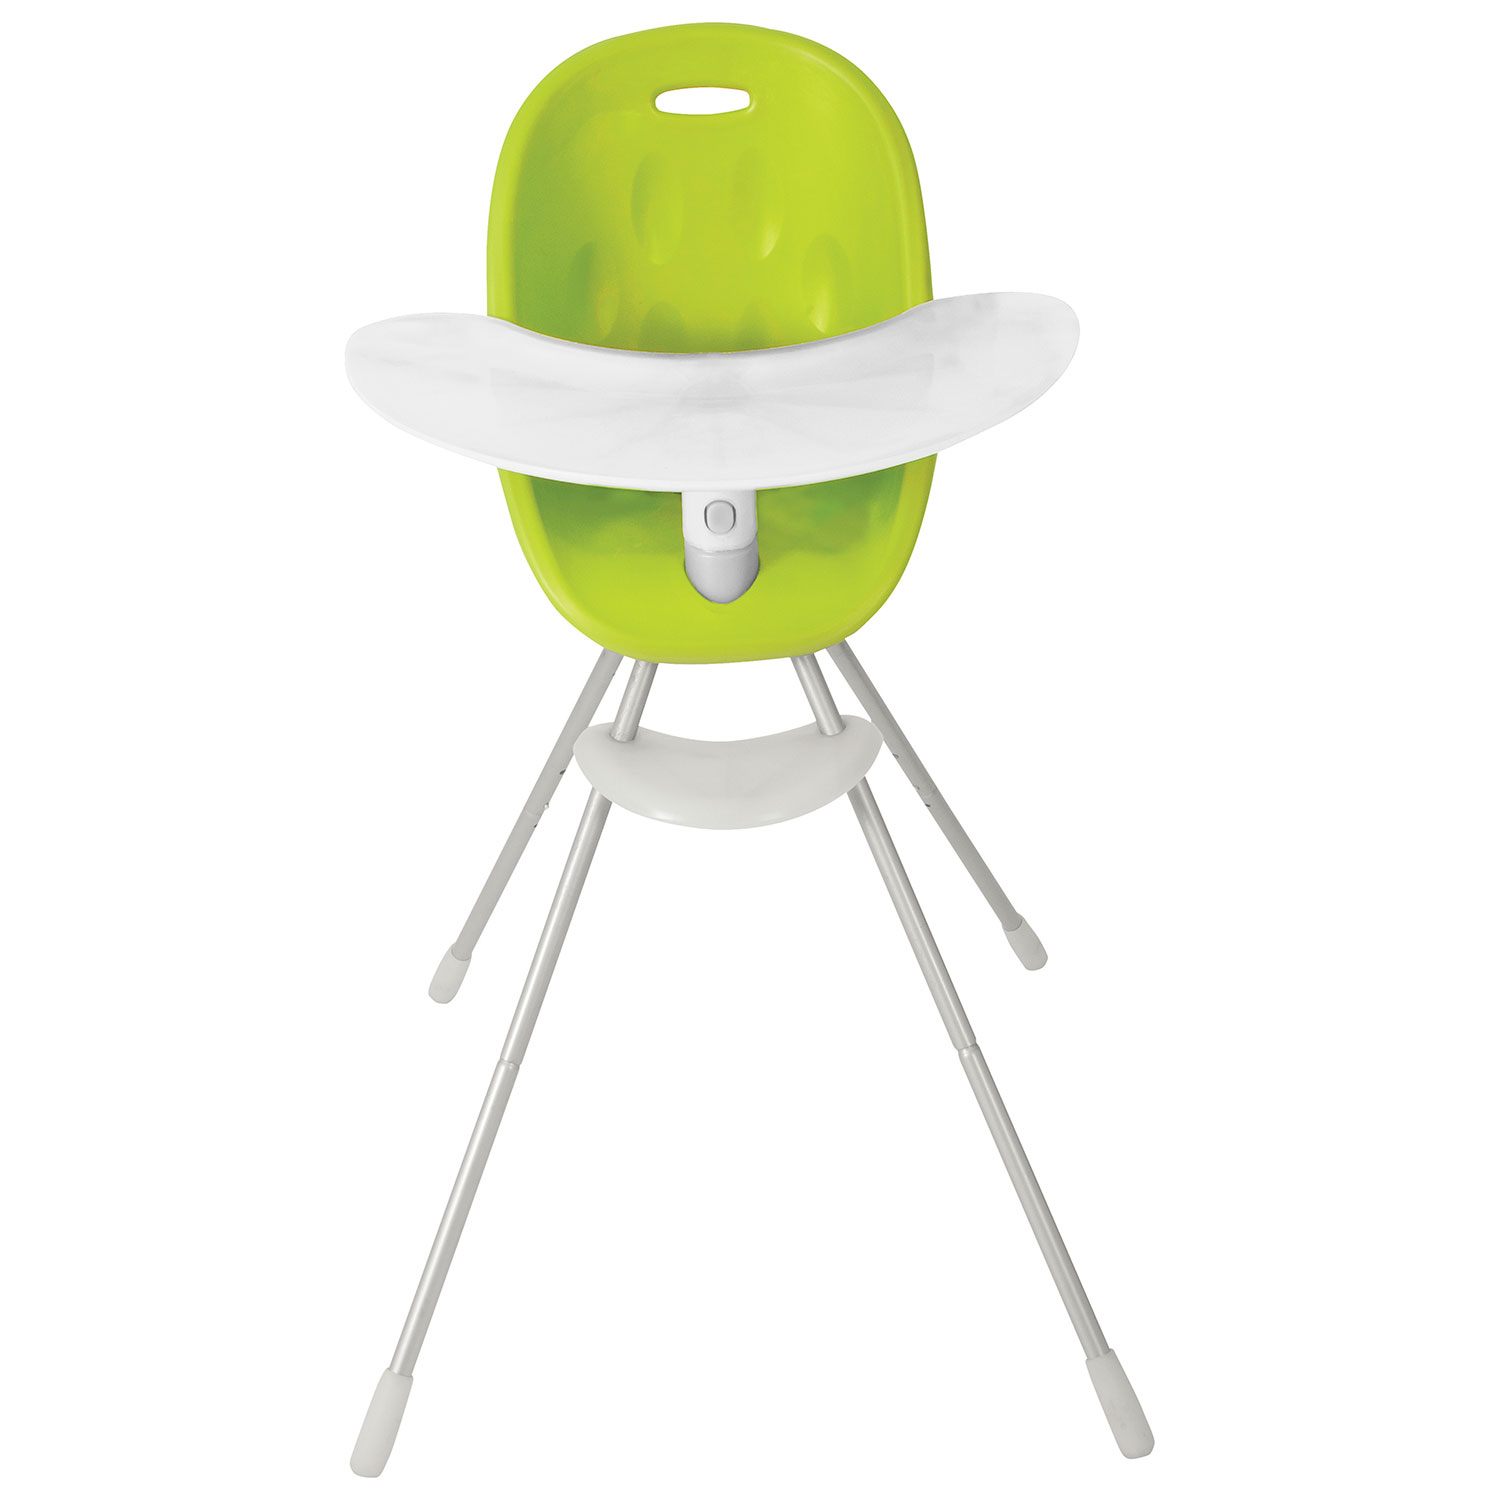 Philu0026teds Poppy High Chair   Green / Silver : High Chairs   Best Buy Canada